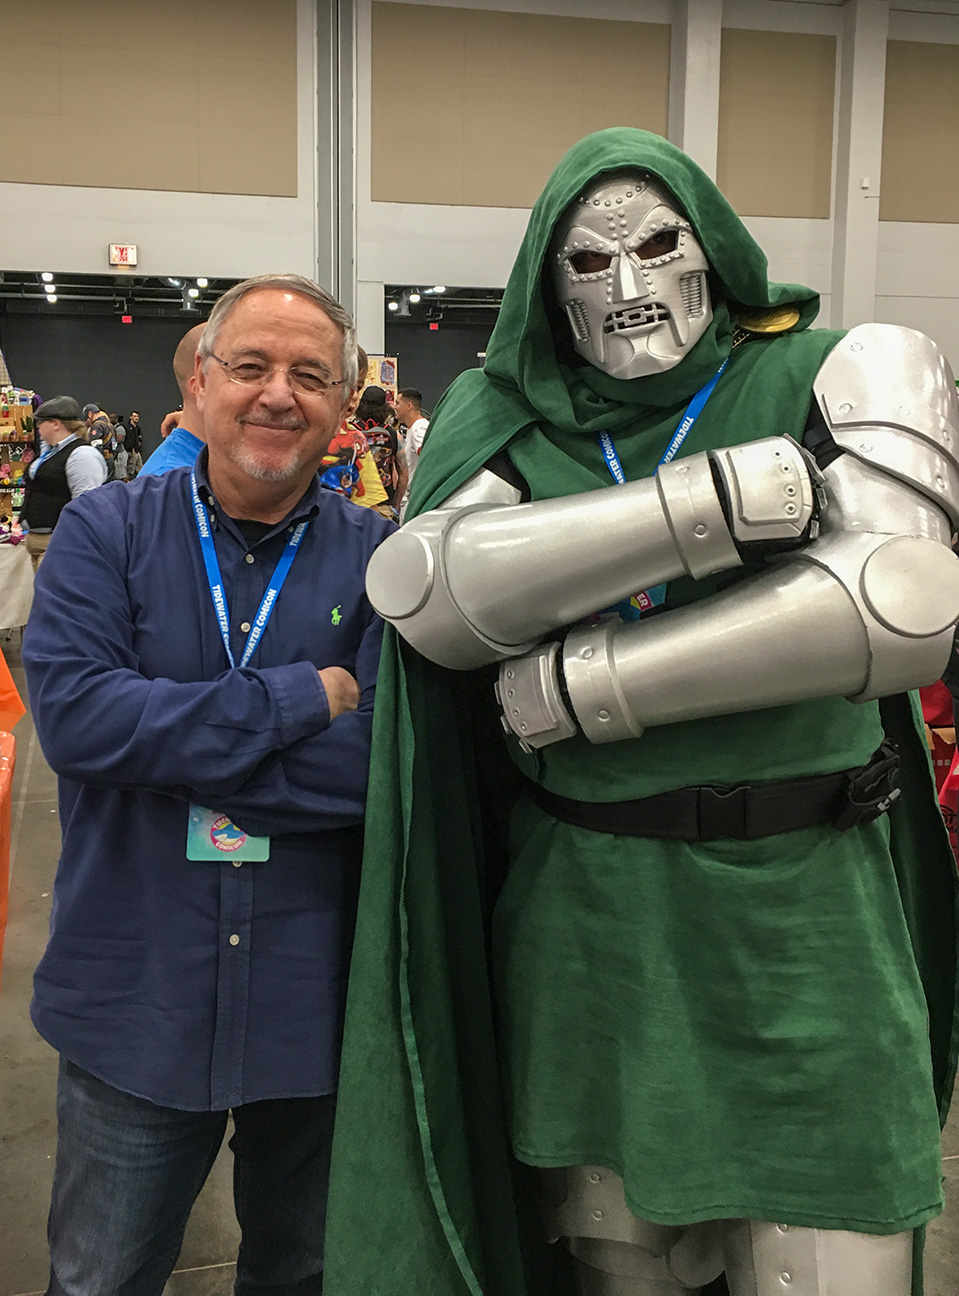 TIDEWATER COMIC CON Not exactly Secret Wars #10 Doom but still awesome cosplay.